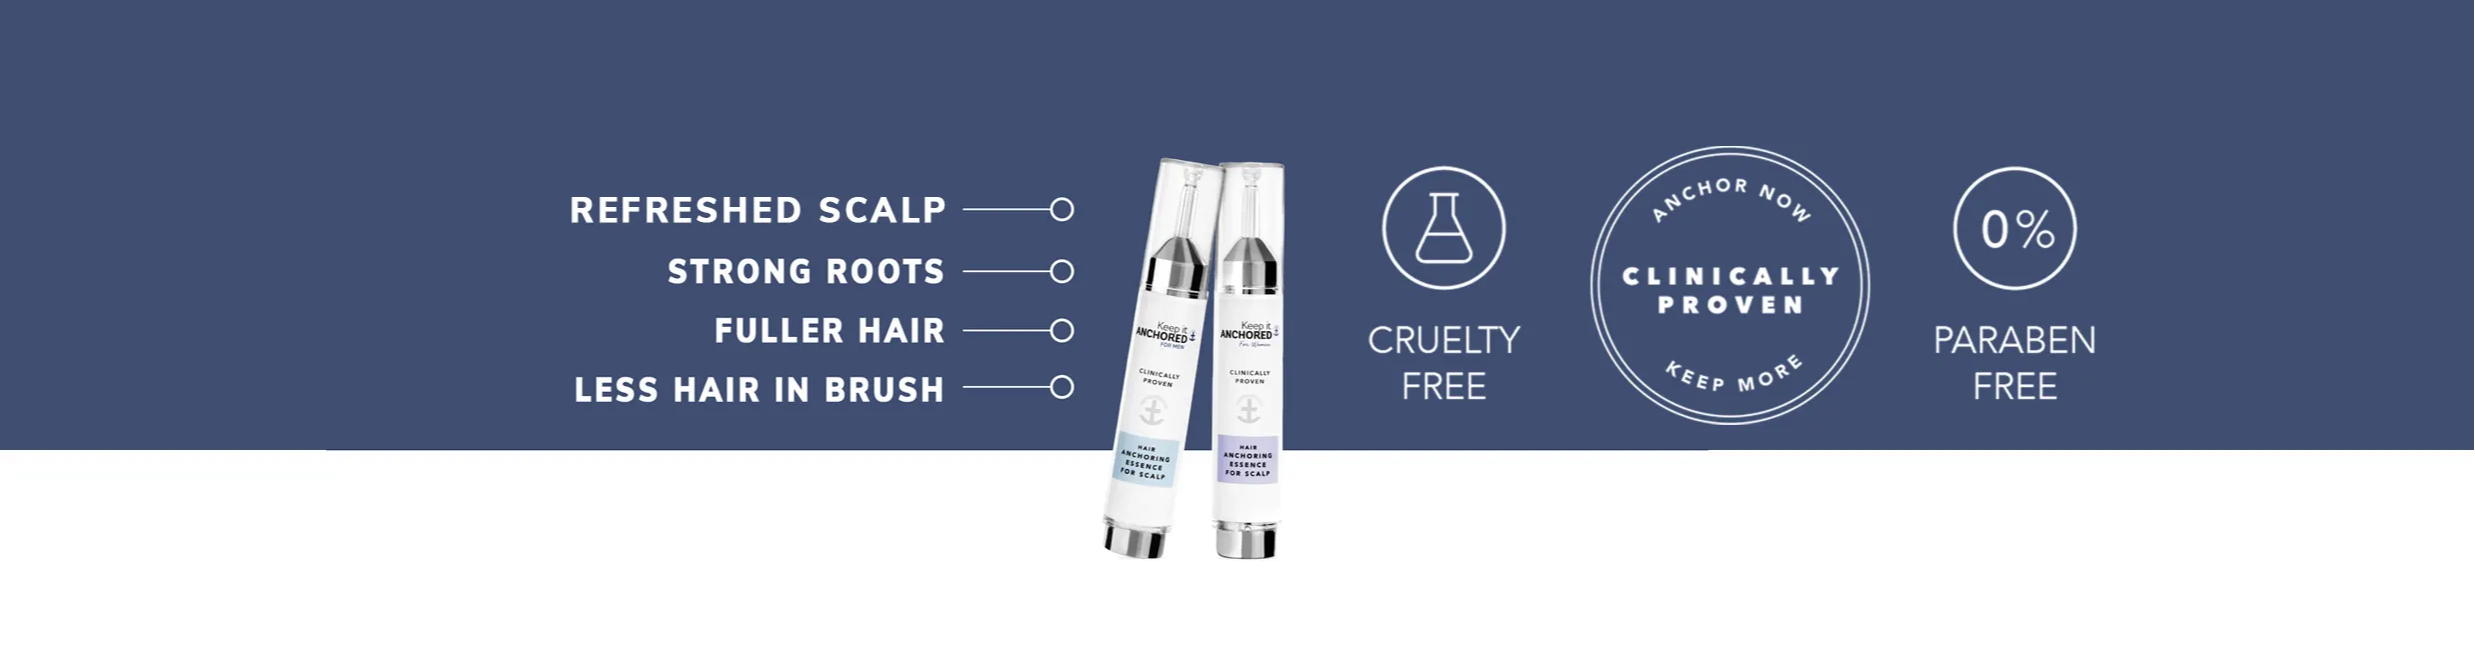 Image KeepItAnchored is clinically proven to help you keep more hair. Get a refreshed scalp, strong roots, fuller hair and see less hair in your brush. Cruelty & Paraben free.